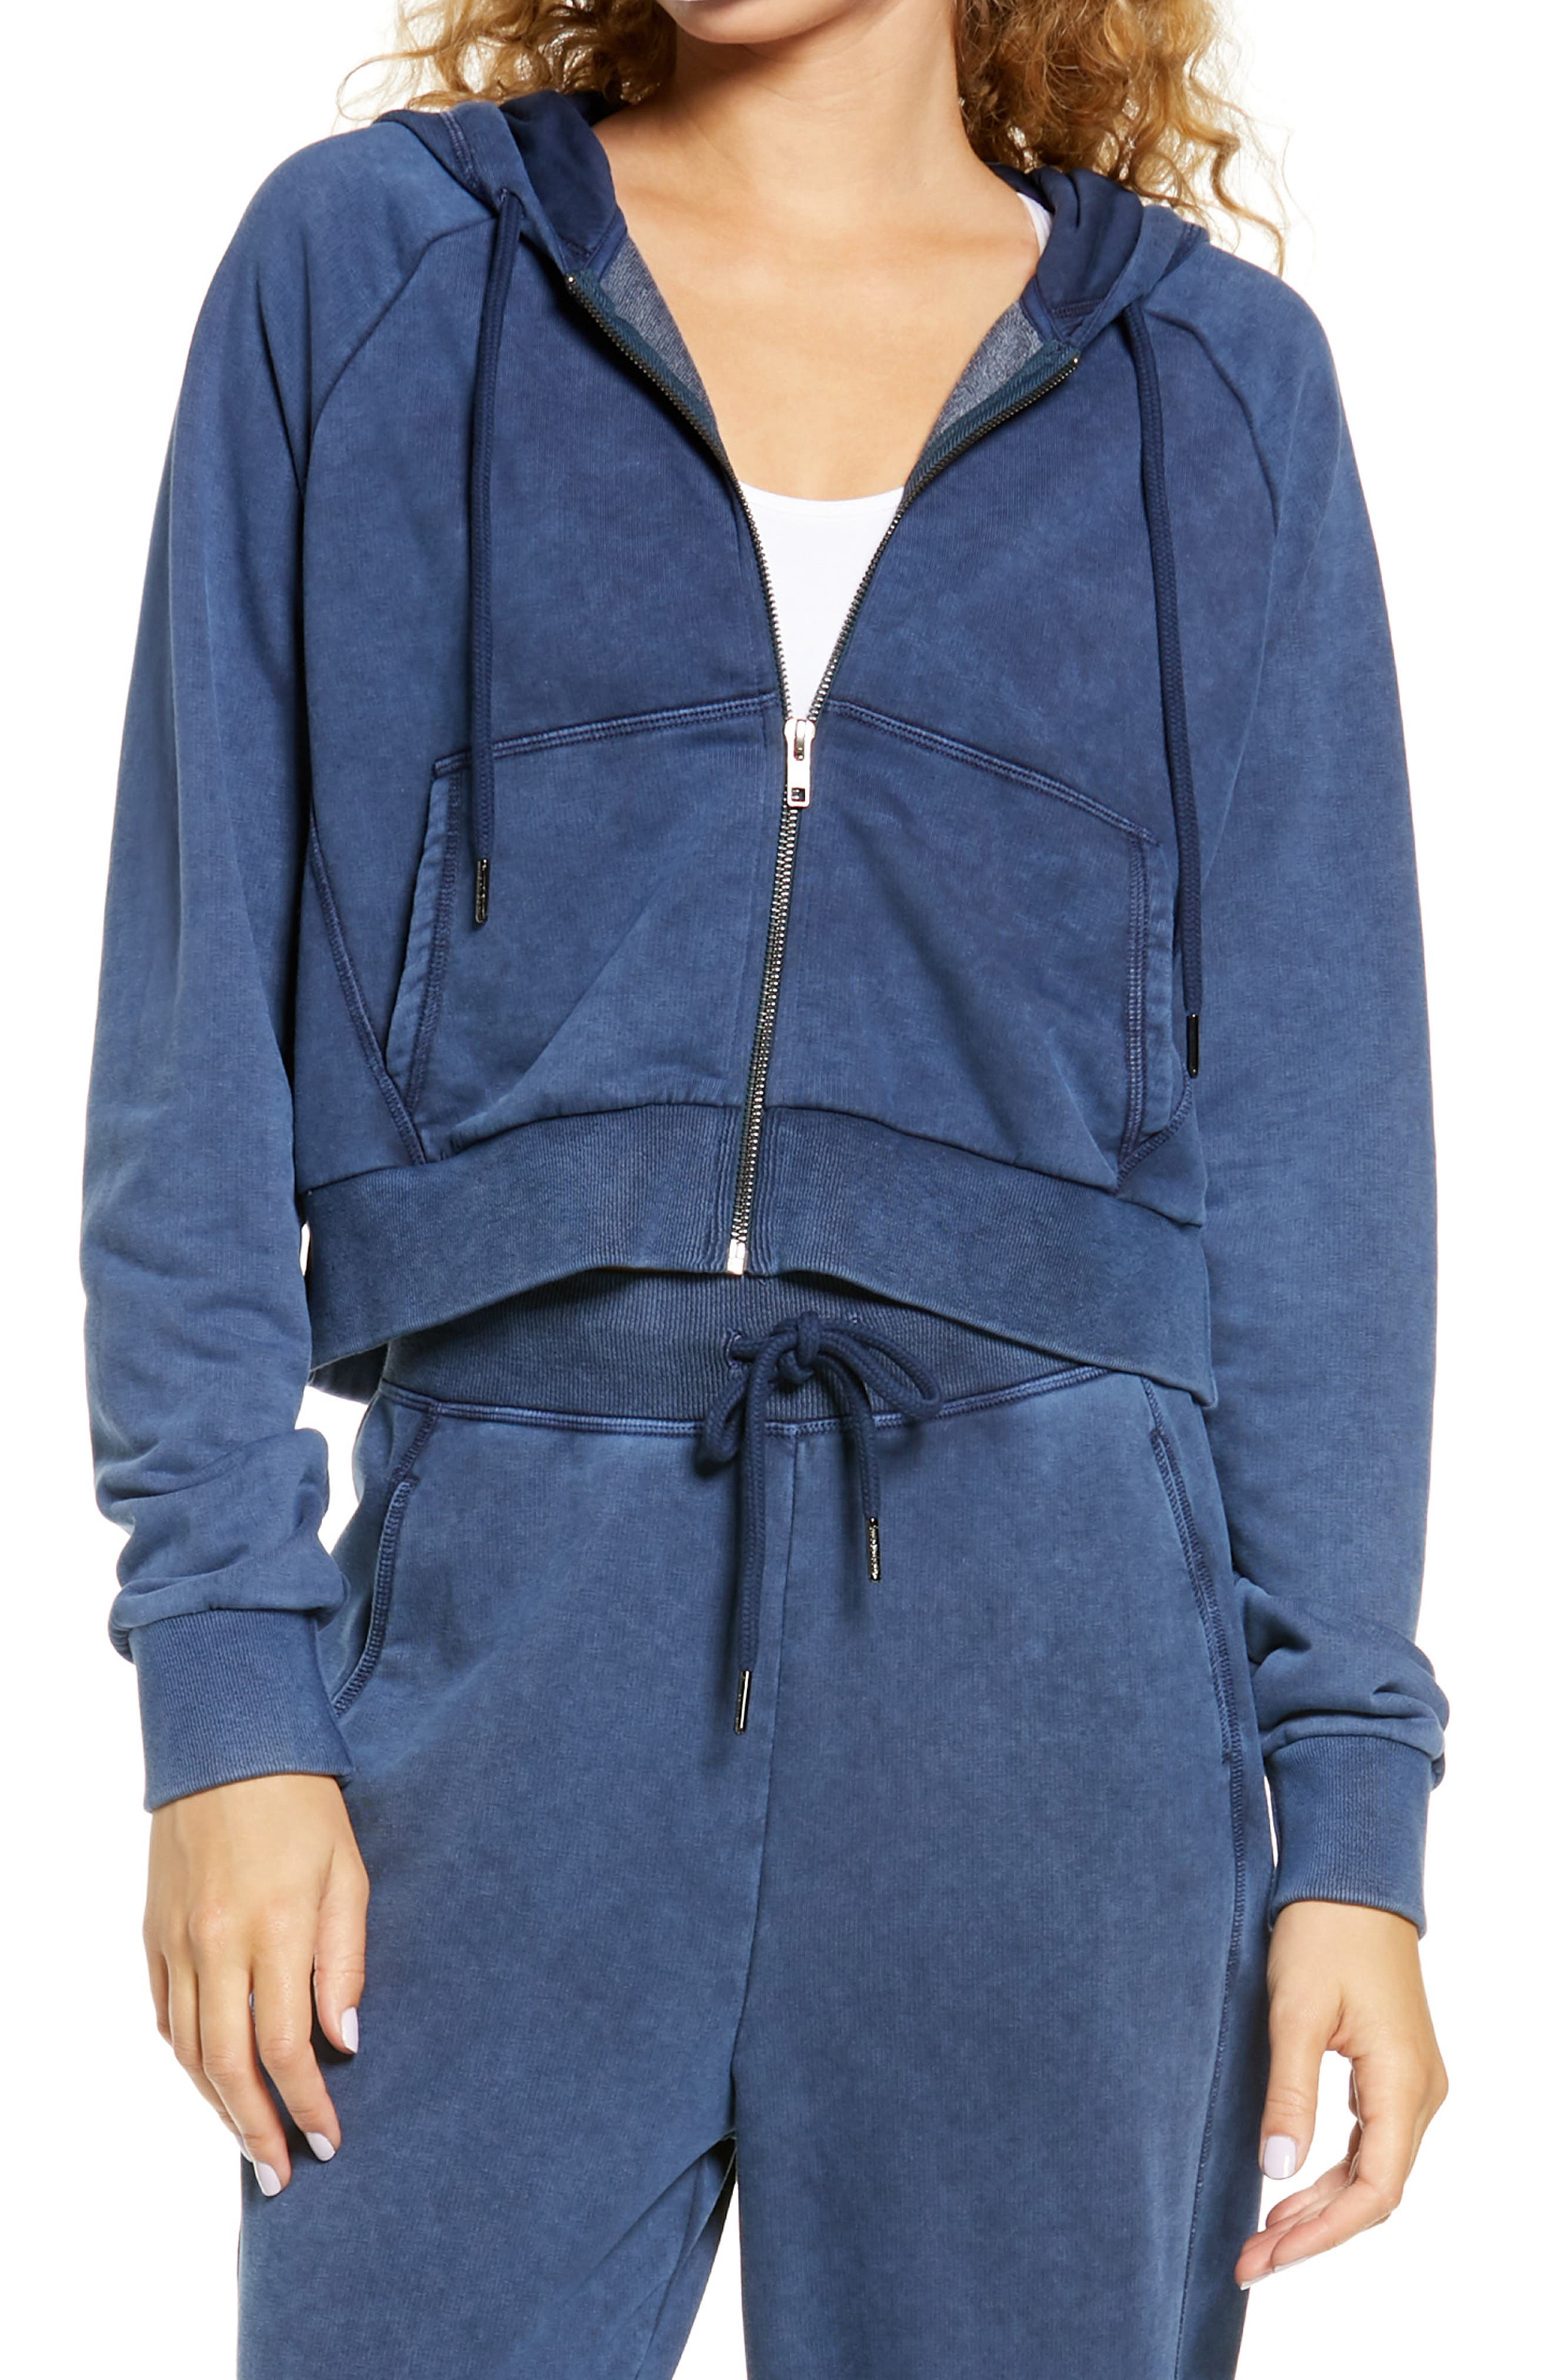 Flow from eagle pose to Savasana to lounging on the couch in this comfy hoodie made from supersoft cotton French terry. Style Name: Sweaty Betty Gary Zip Front Hoodie. Style Number: 6060691. Available in stores.